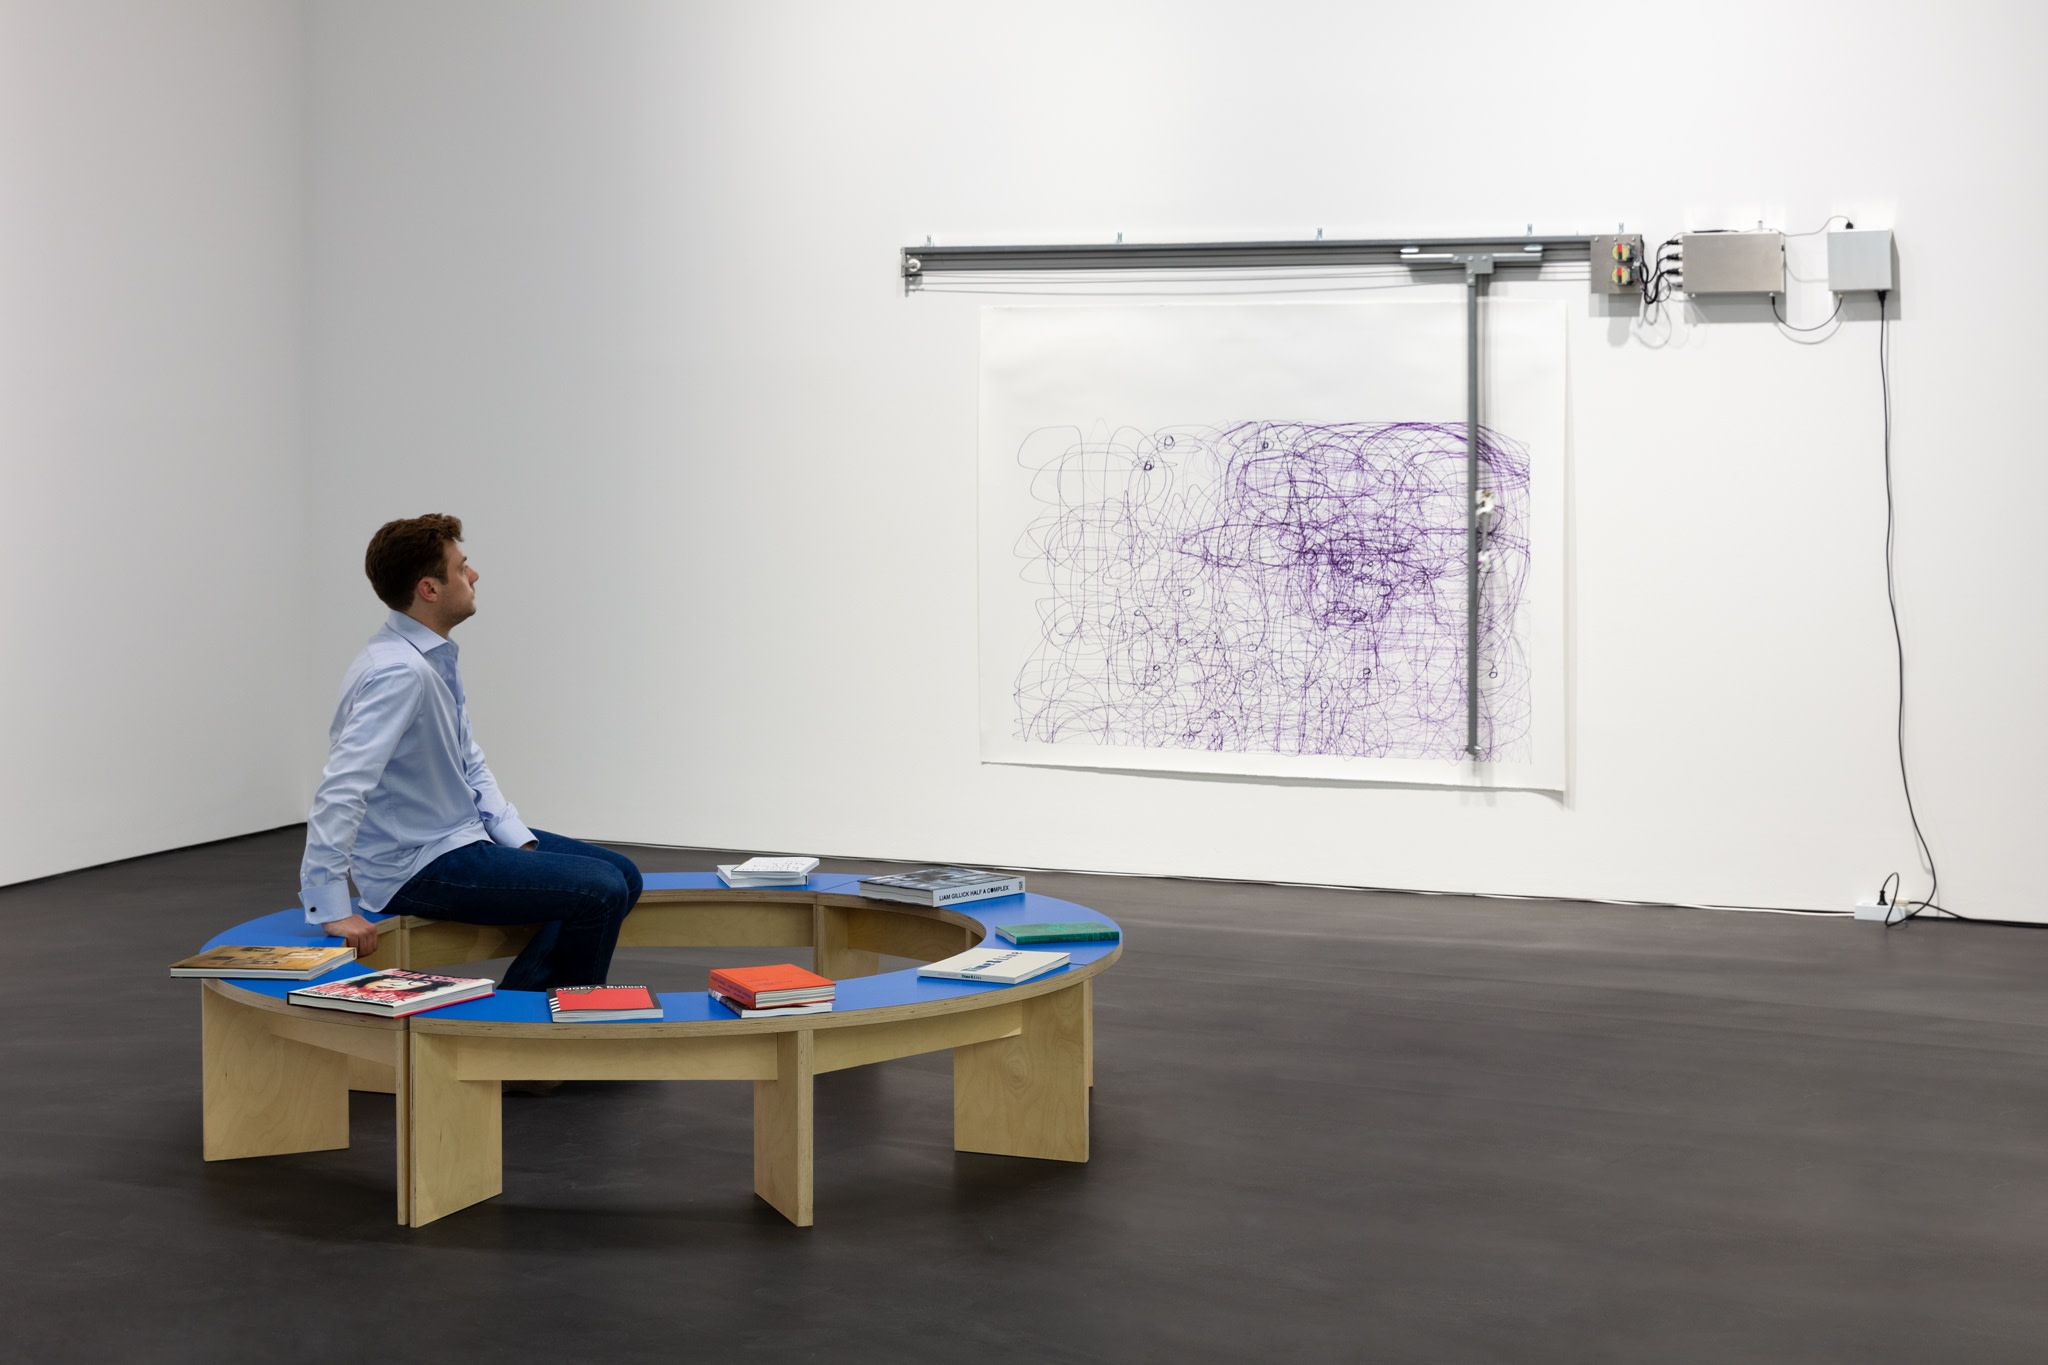 Background: Angela Bulloch, Dynamic Stereo Drawing Machine, 2020, sound-activated drawing machine, ink, metal rails and electronic motor, paper, 170 x 300 cm (170 x 300 x 66 7/8 in) approx. Foreground: Liam Gillick, Prototype Seating For A Revised Production Centre, 2005, plywood, paint, 50 x ø 200 cm (19 3/4 x ø 78 3/4 in). Photo © Andrea Rossetti